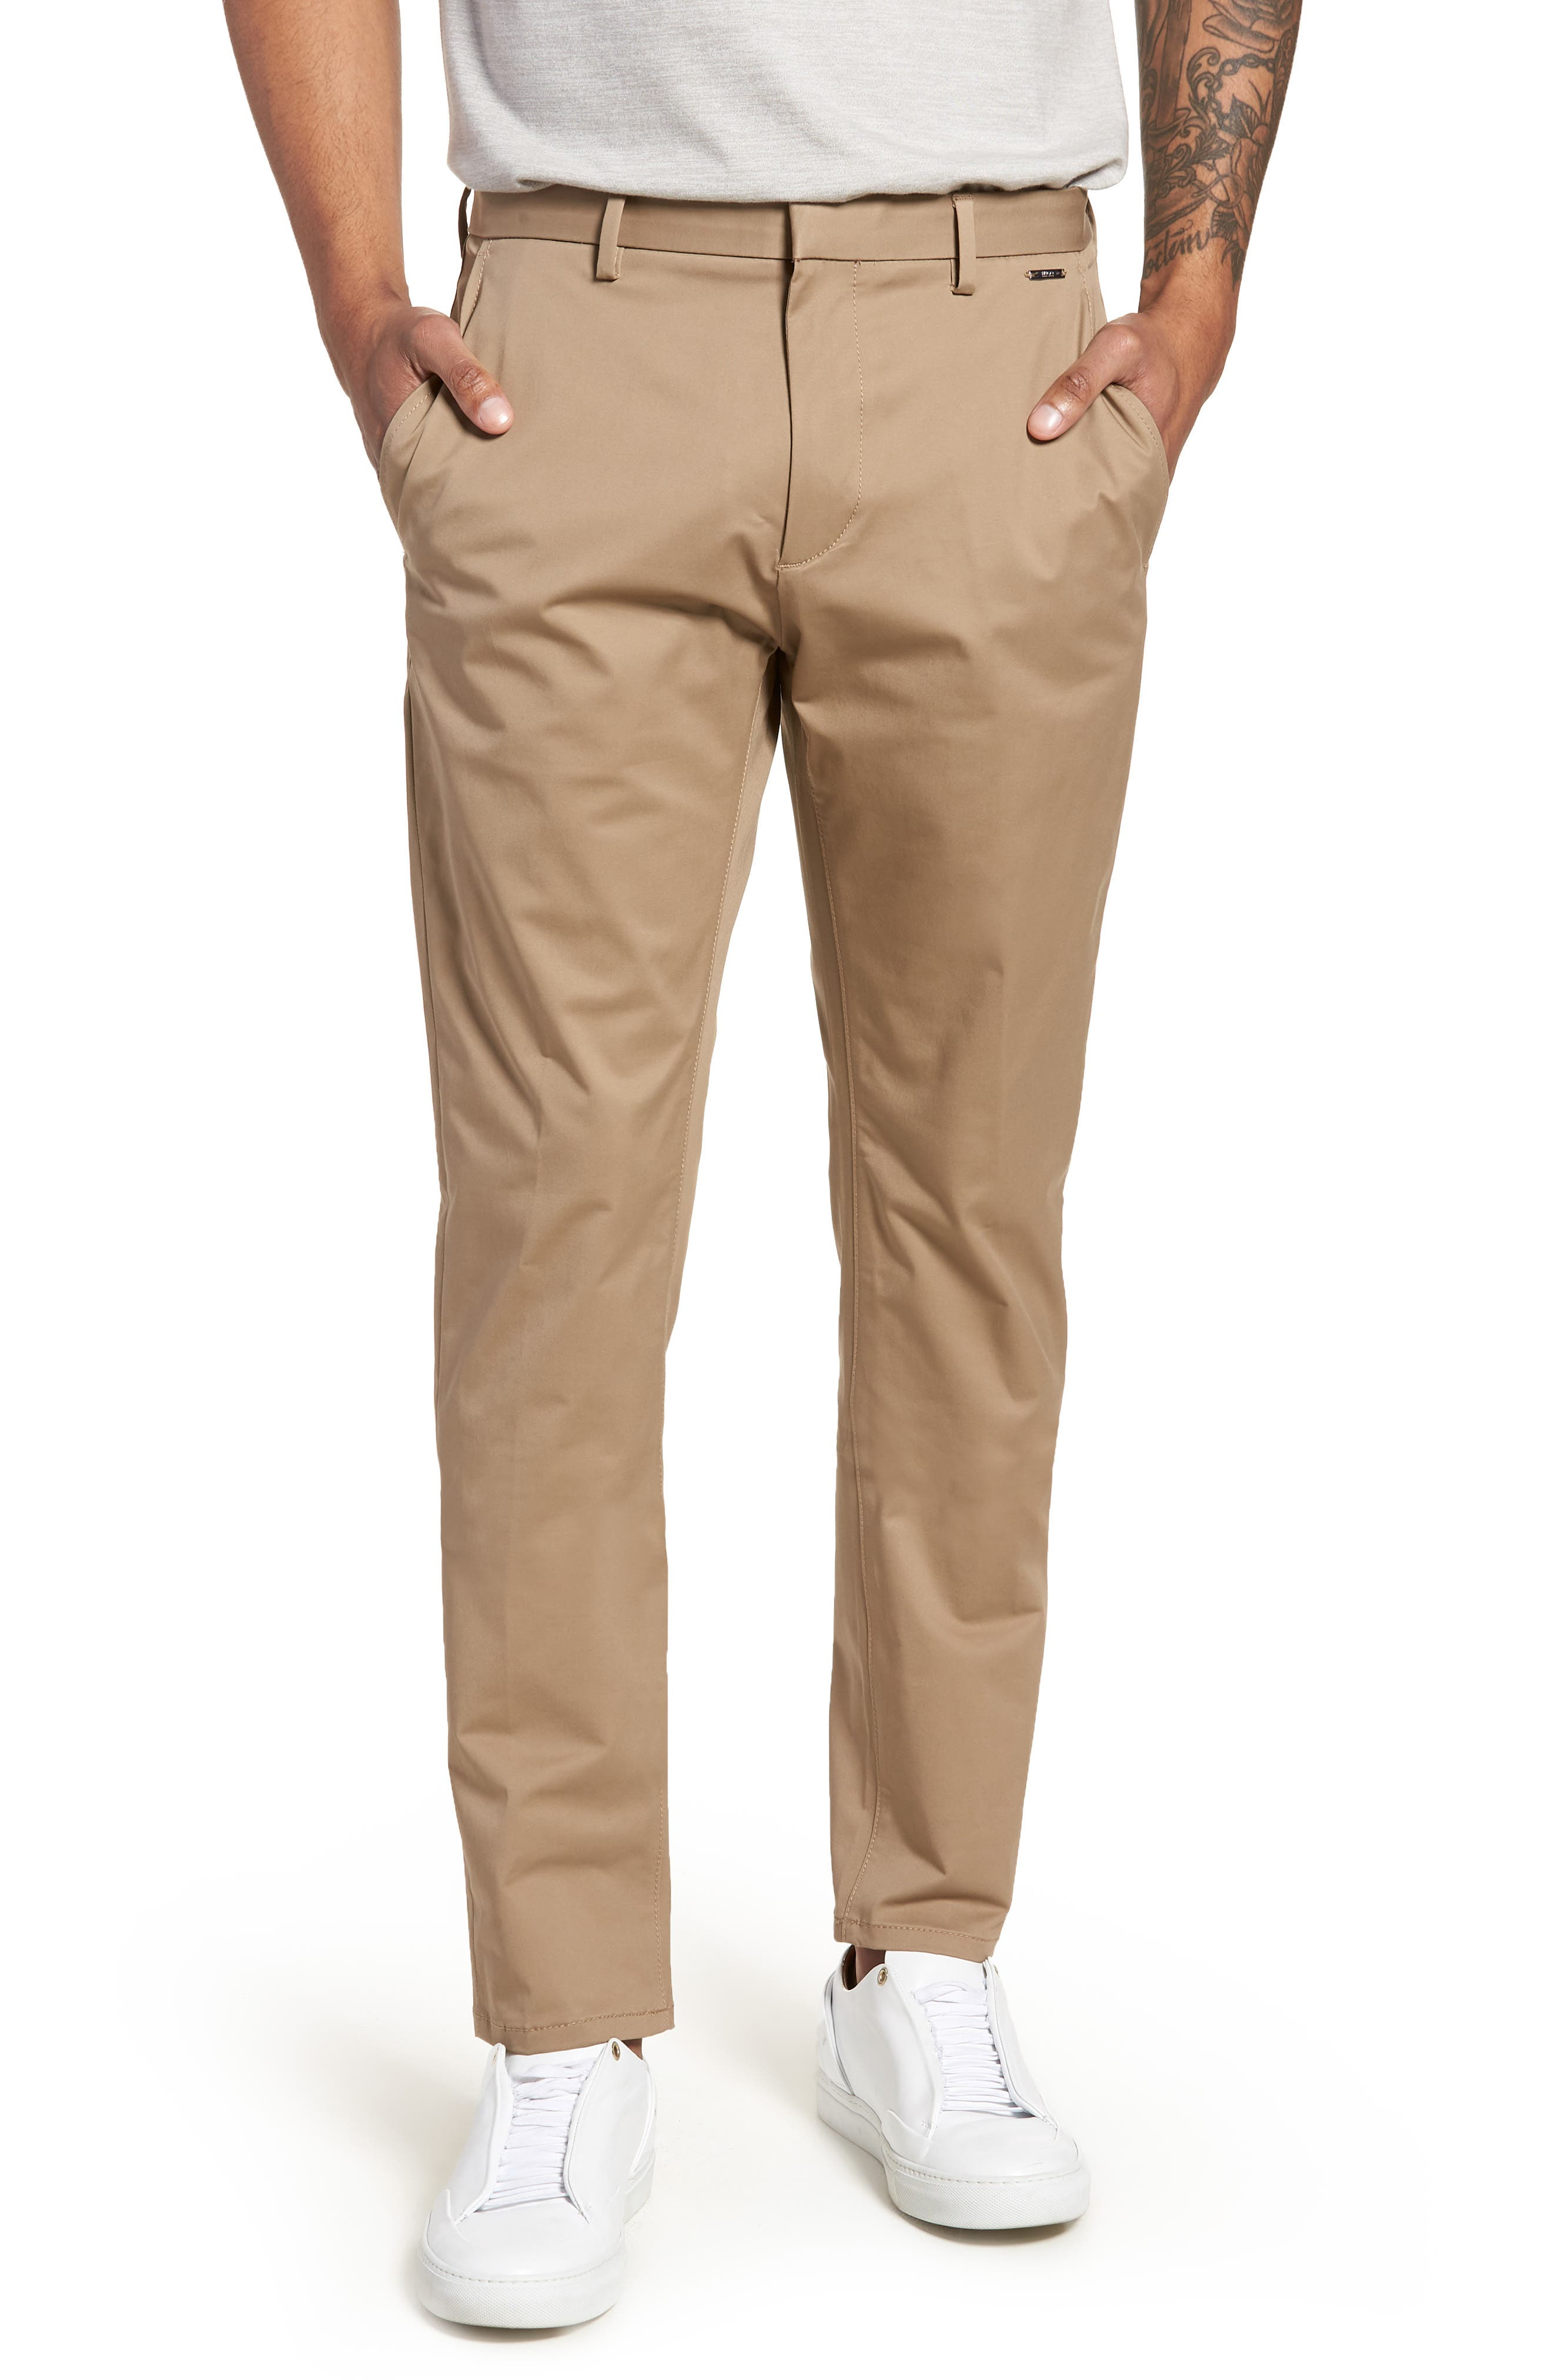 Helgo Flat Front Stretch Pants,                             Main thumbnail 1, color,                             265